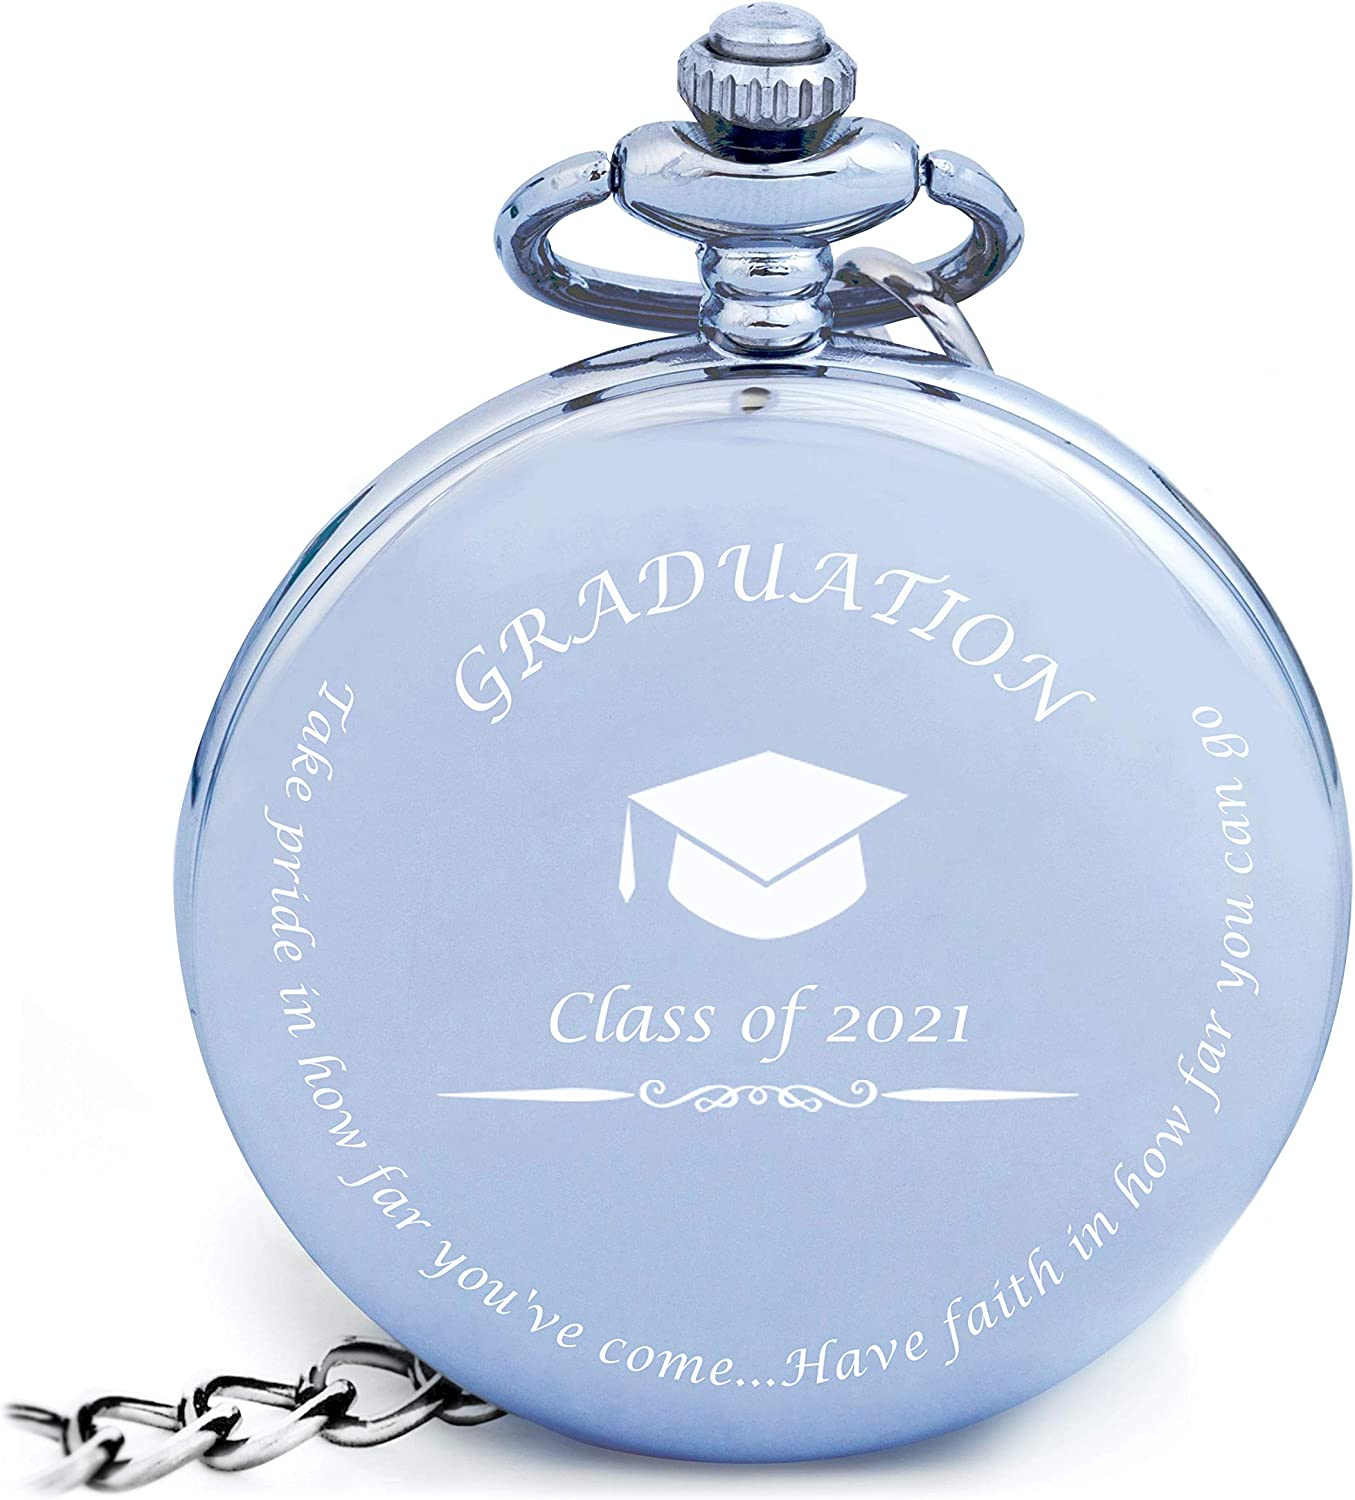 Graduation Gifts For Him Pocket Watch Engraved Class Of 2021 Perfect College High School Graduation Gifts Or Present For Son Him In 2021 Watches